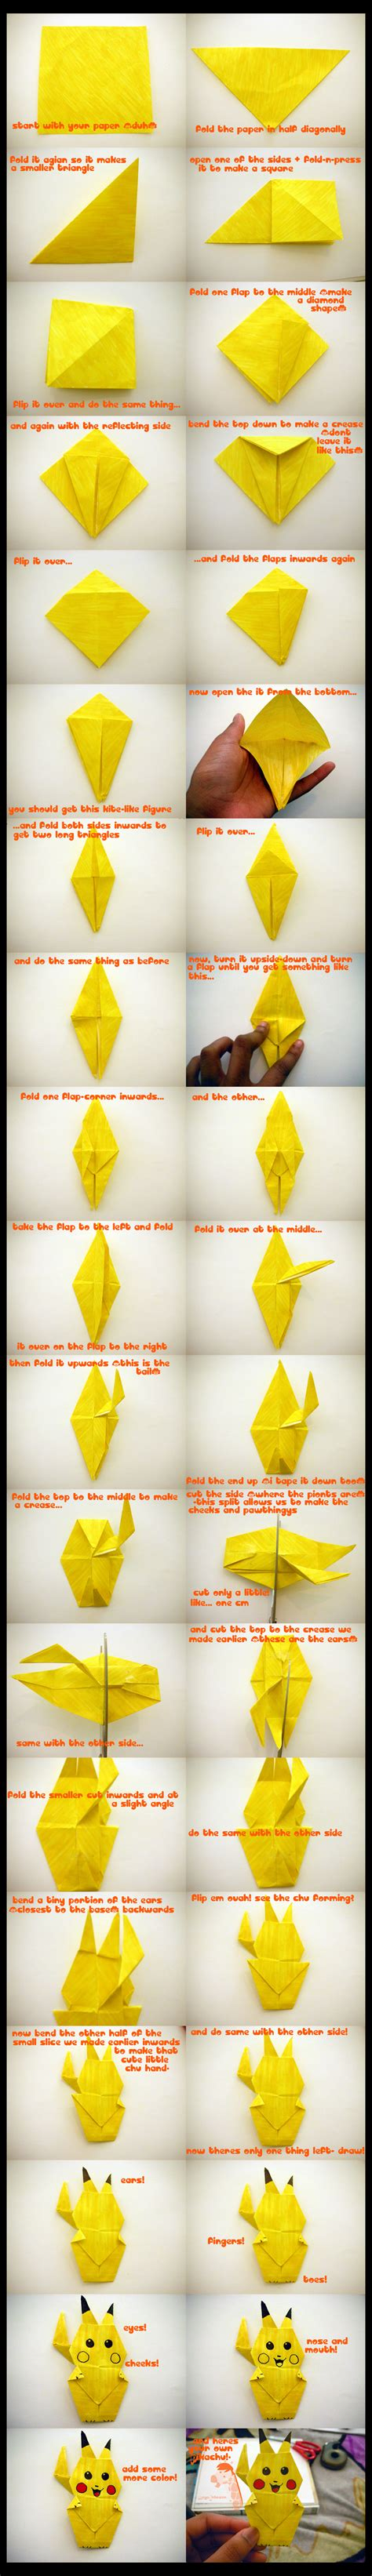 How To Make A Paper Pikachu - how to make an origami pikachu by wesroz on deviantart